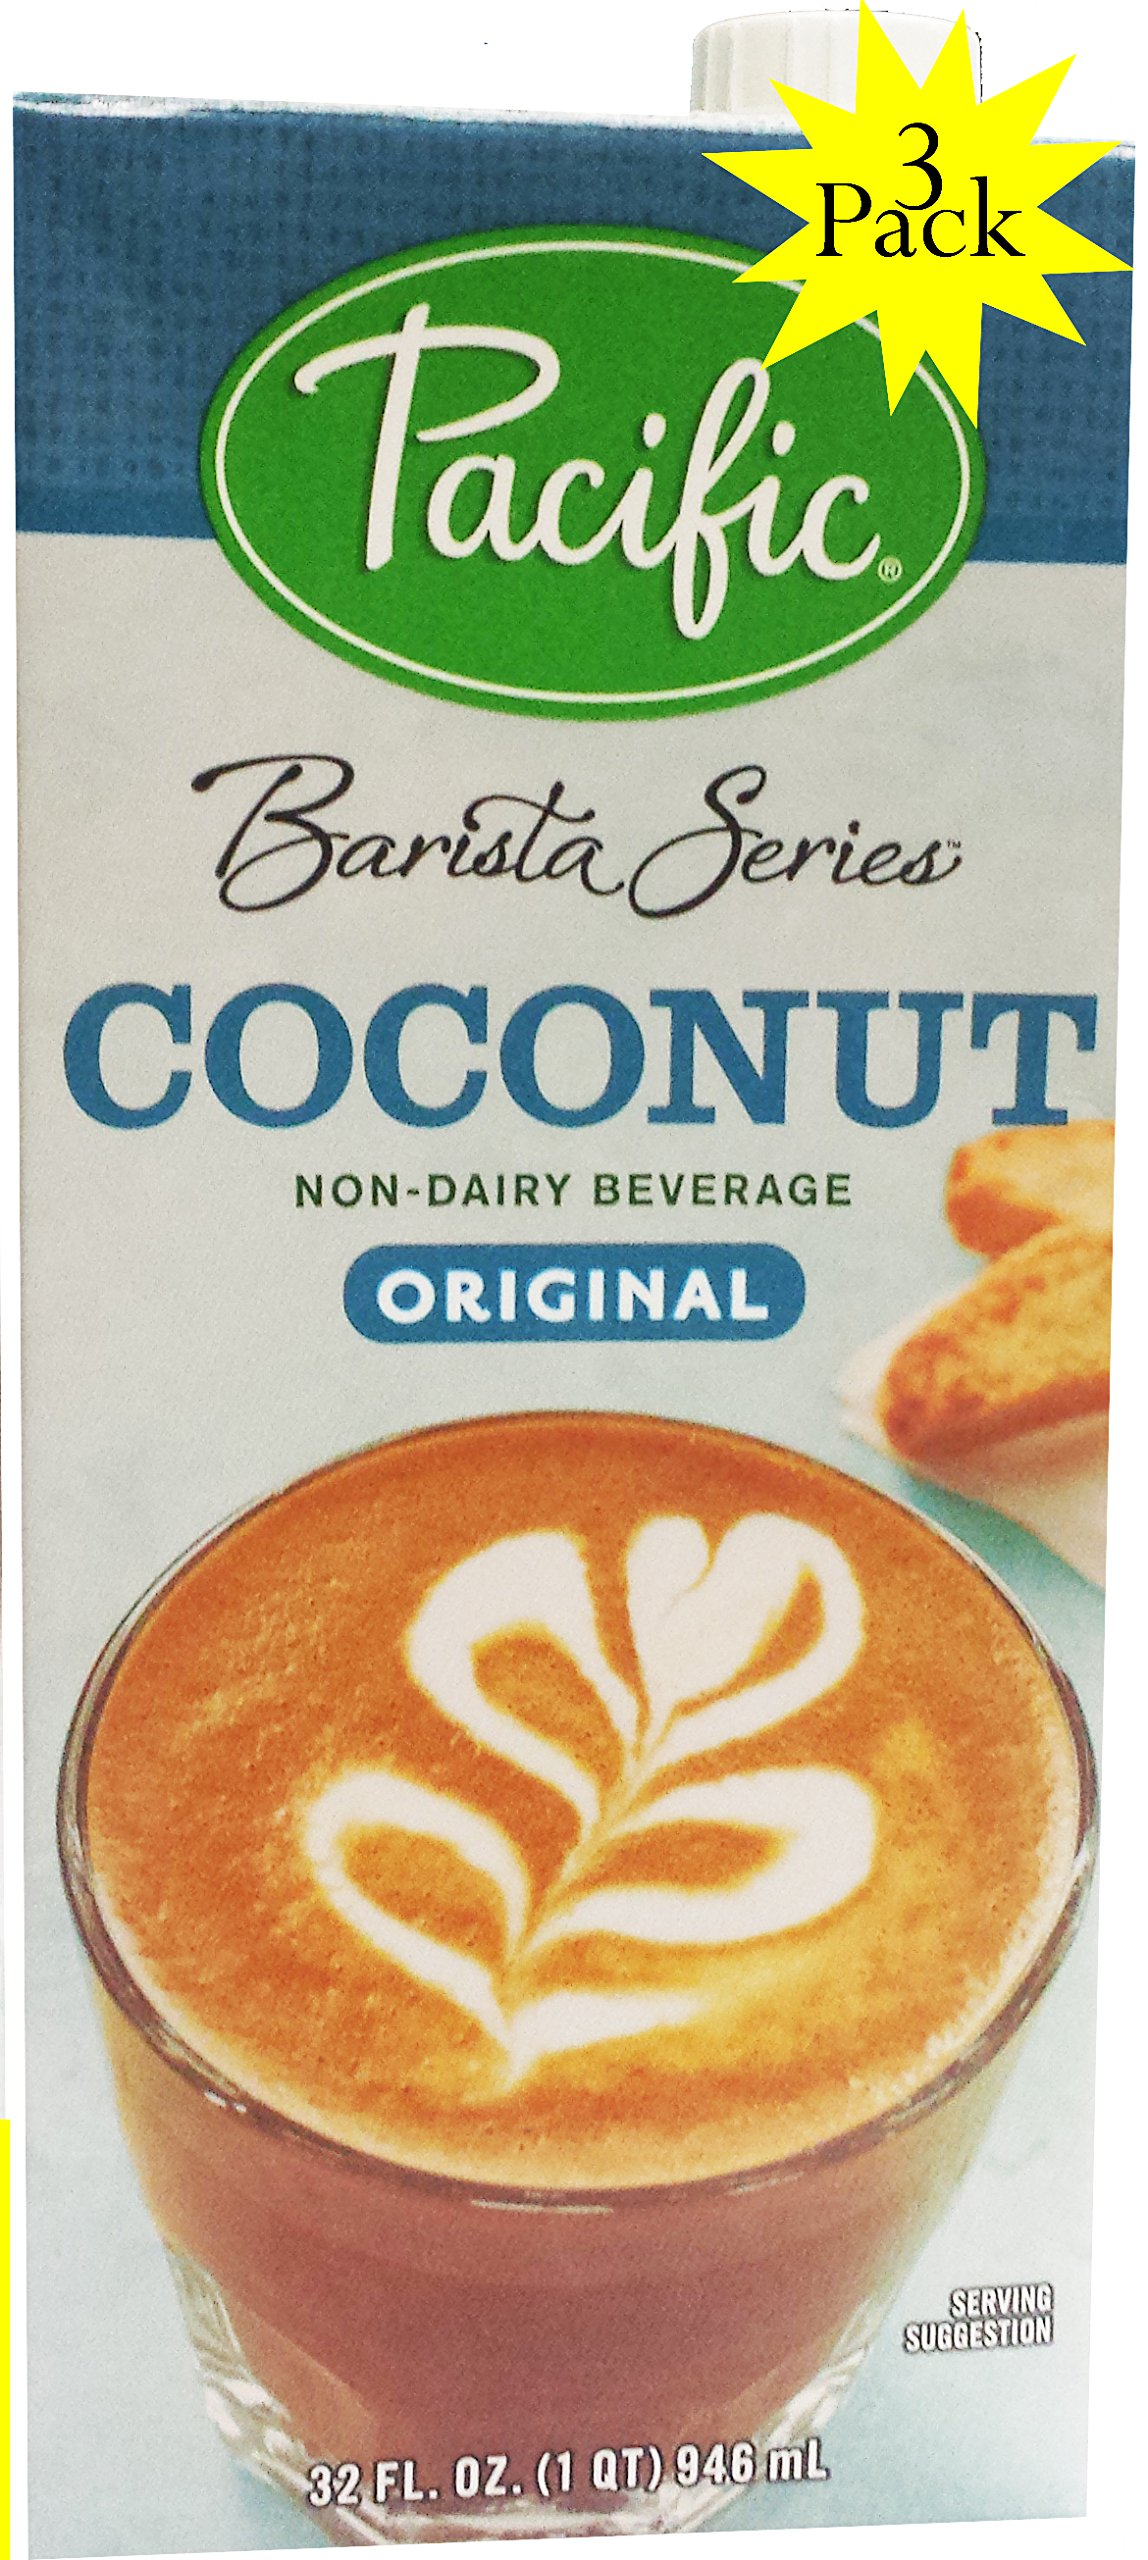 Pacific Barista Series Coconut Original 3 Pack by Pacific